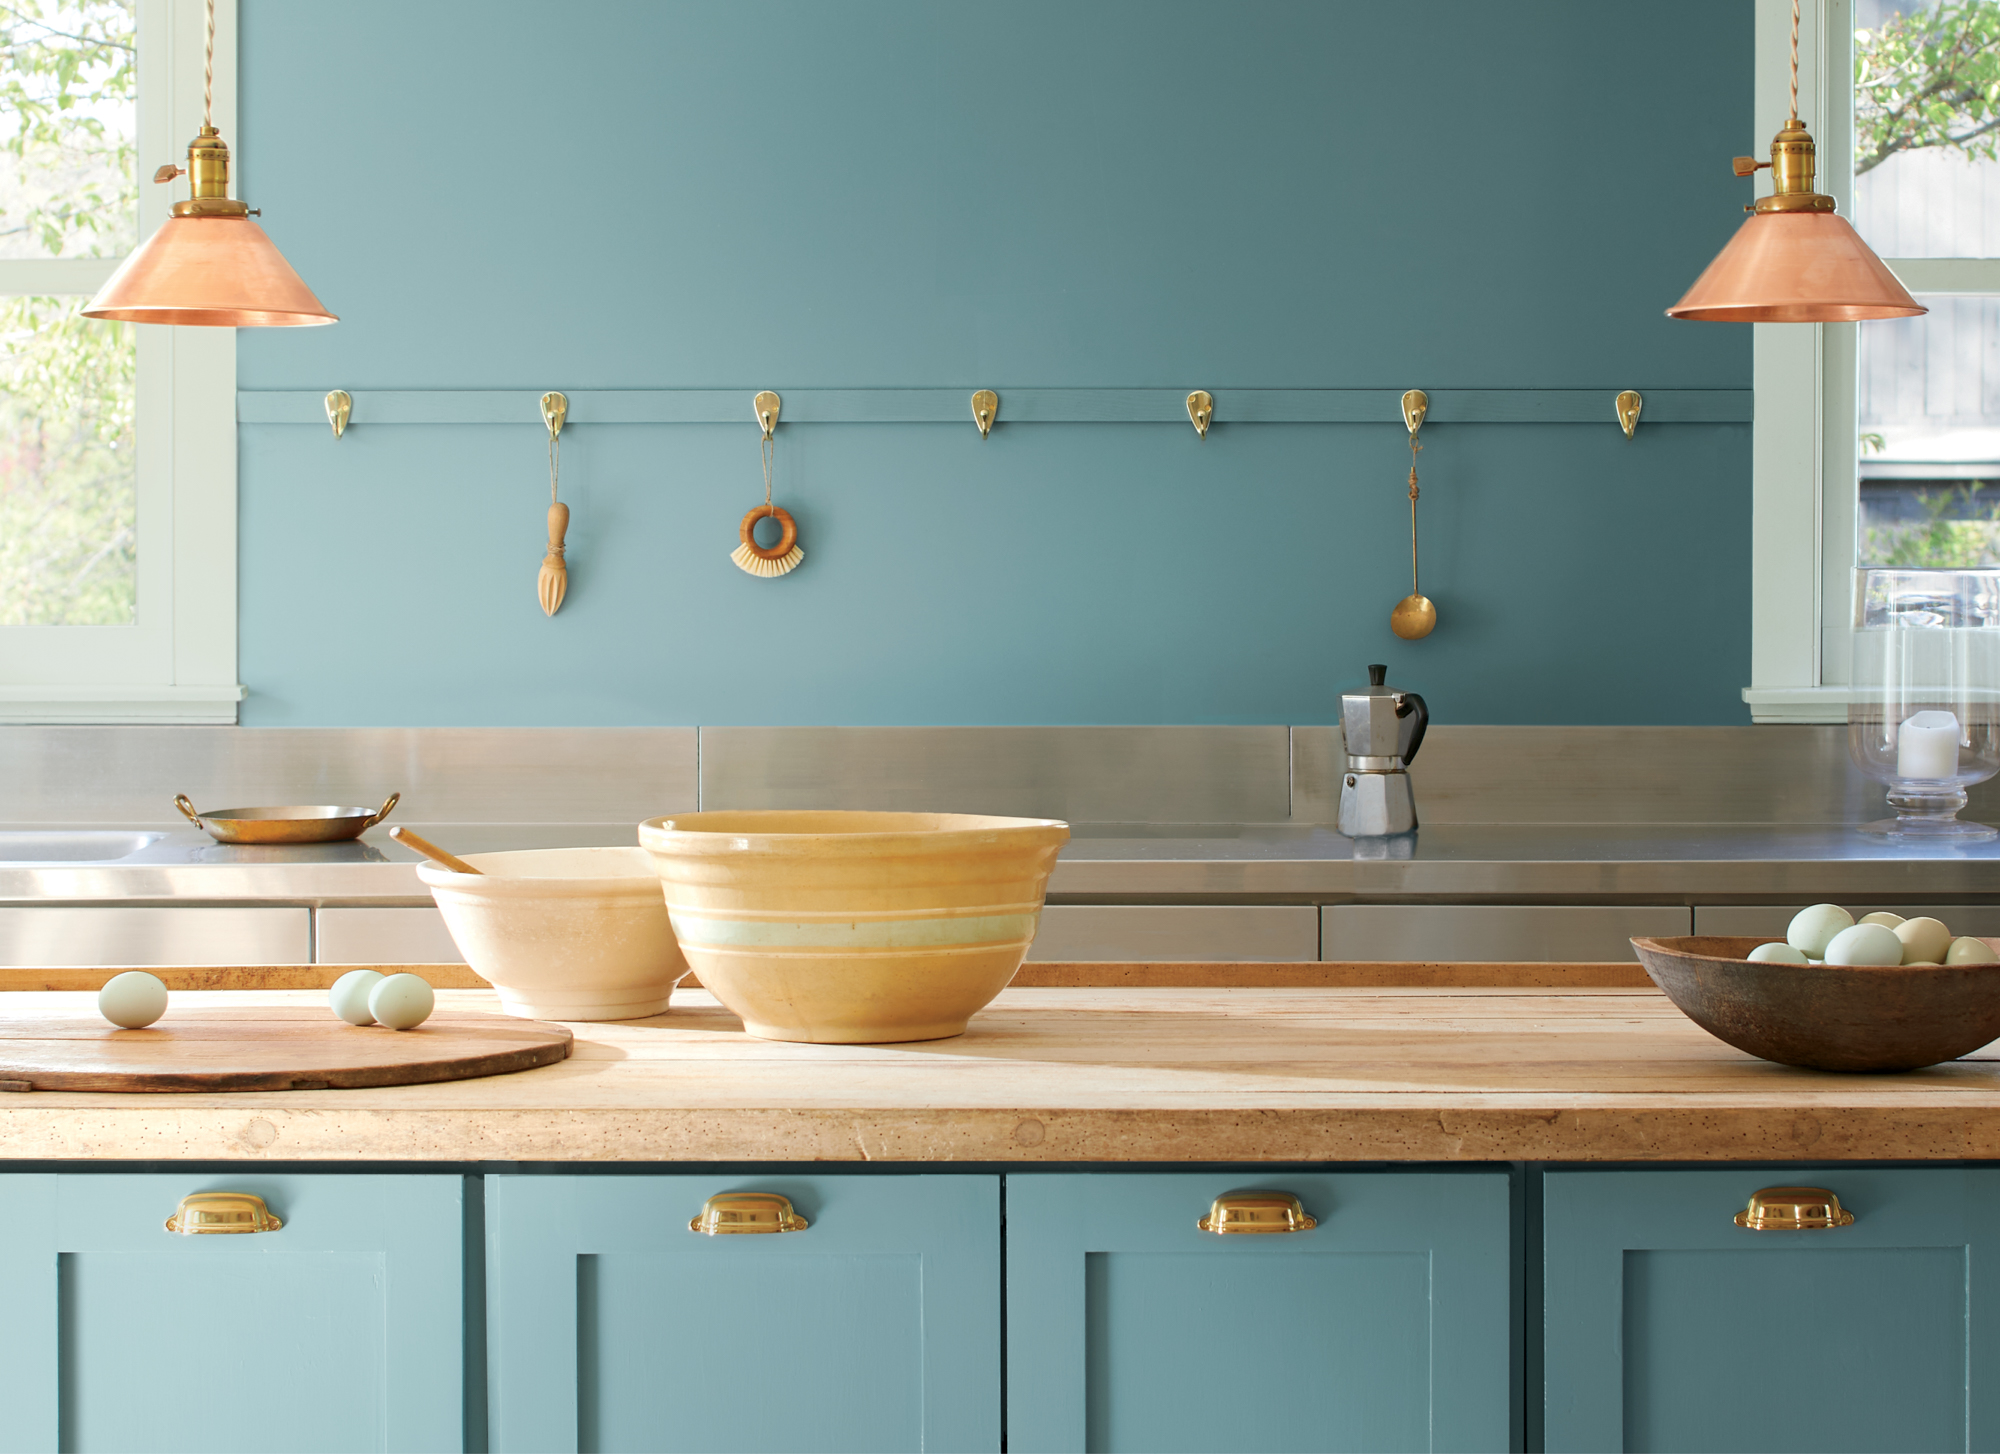 Benjamin Moore Color of the Year 2021, Aegean Teal in kitchen